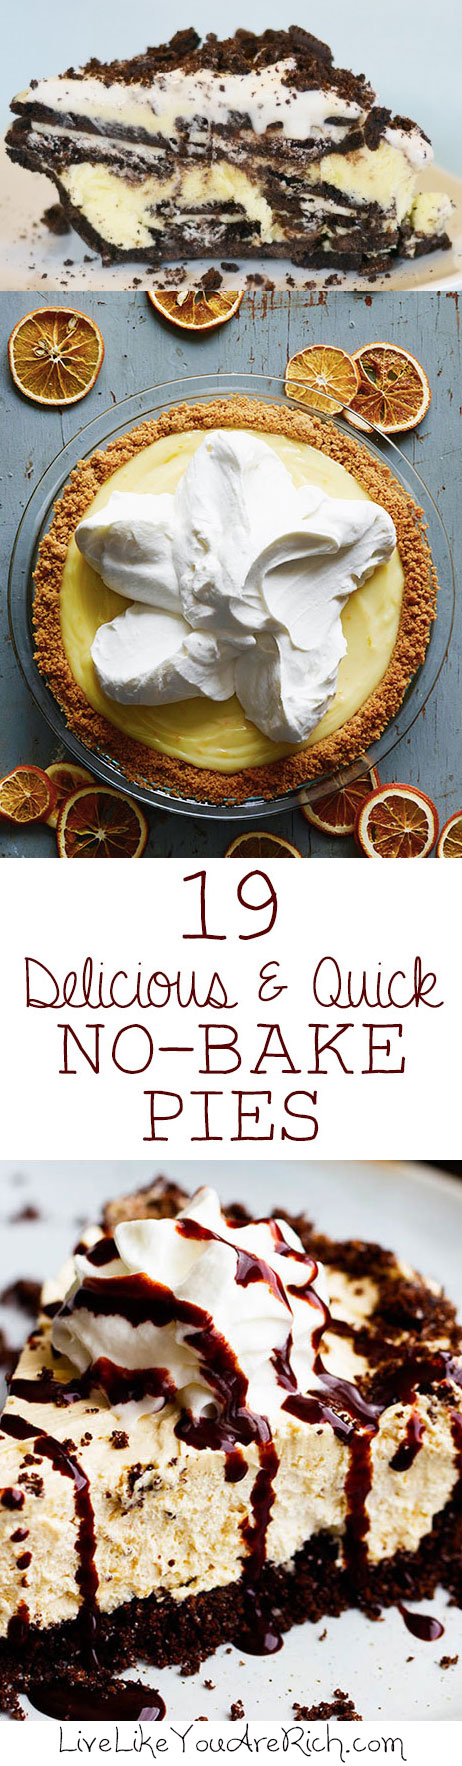 19 Delicious and Quick No-Bake Pies